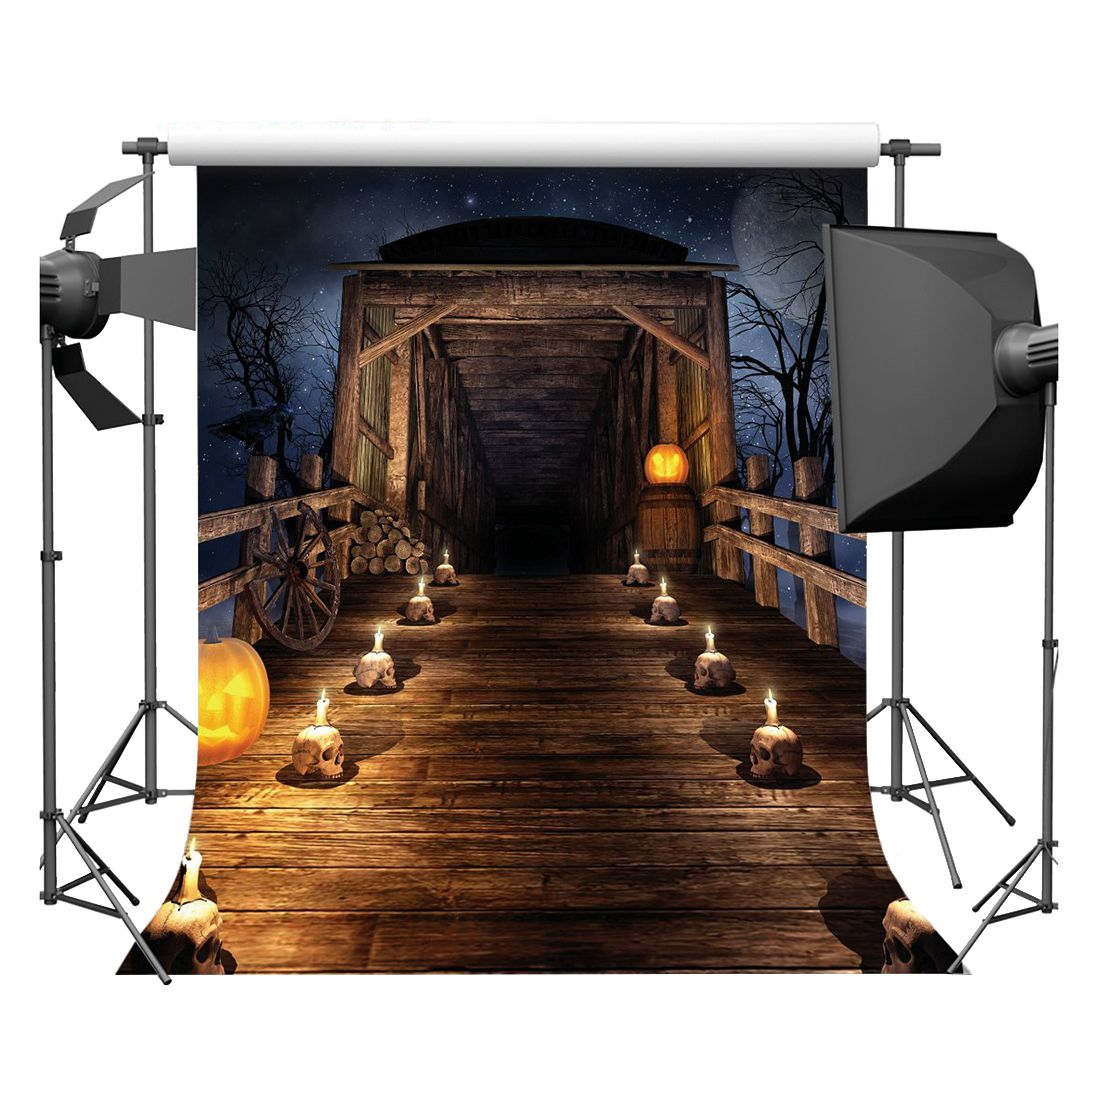 Halloween Vinyl Photography Backdrop Photo Background Studio Prop 5*7ft, Skull Chalet shanny autumn backdrop vinyl photography backdrop prop custom studio backgrounds njy33